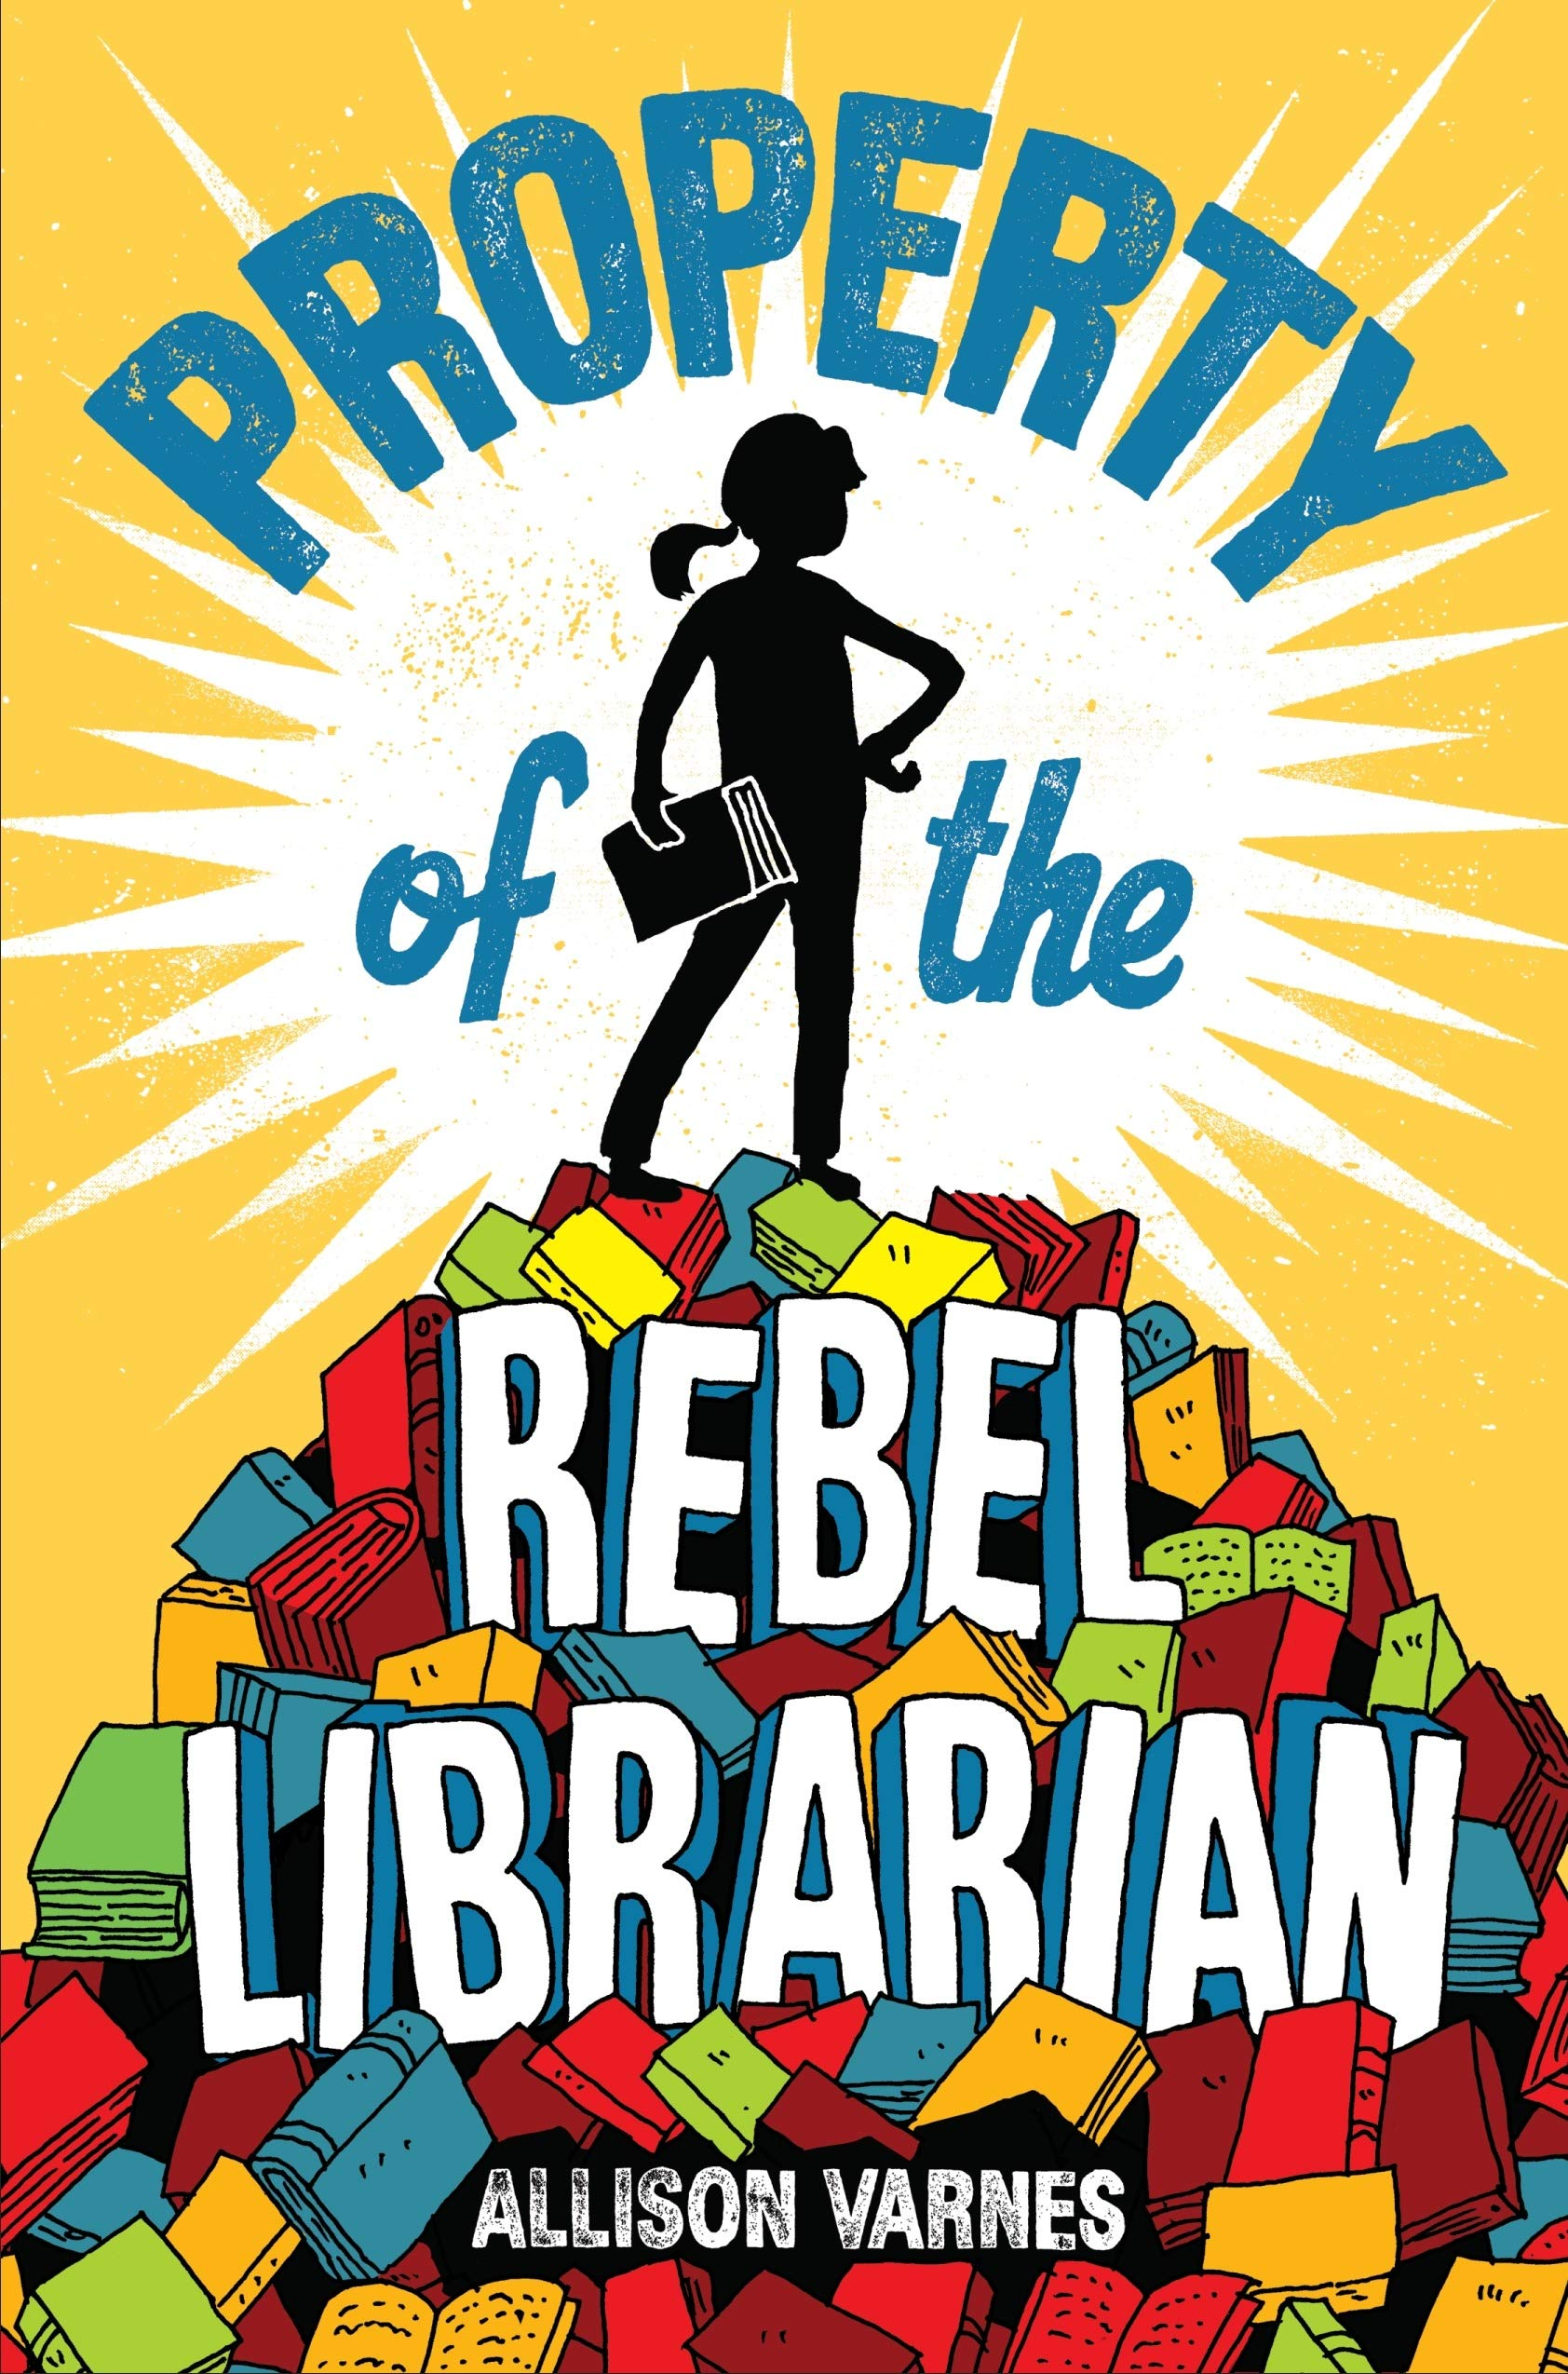 Librarian clipart honest child. Property of the rebel